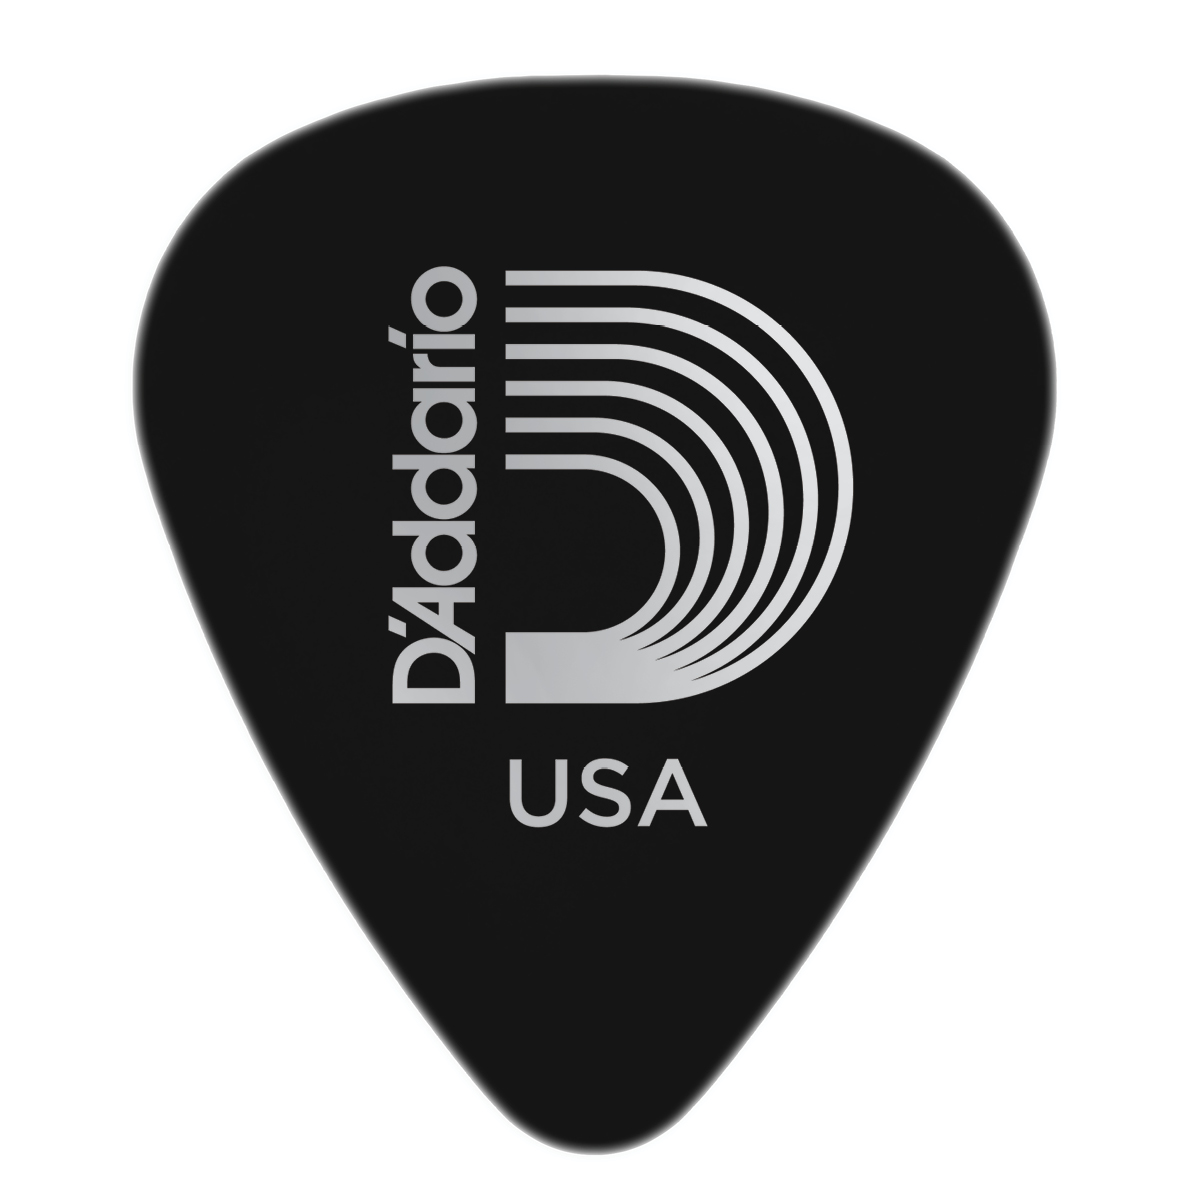 Planet Waves Black Celluloid Guitar Picks, 25 pack, Light by